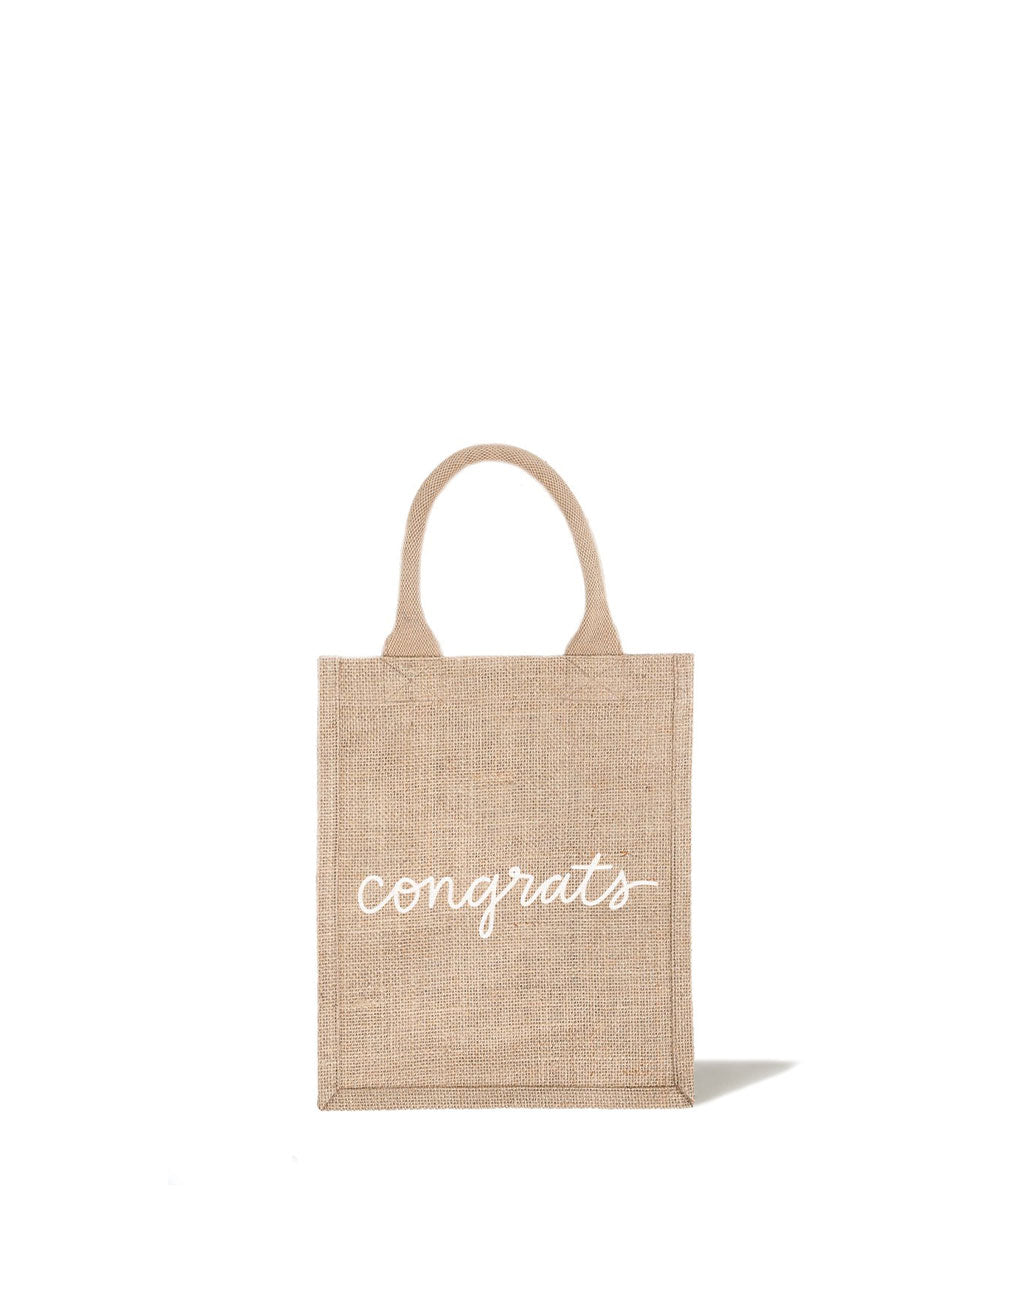 Medium Congrats Reusable Gift Tote In White Font | The Little Market